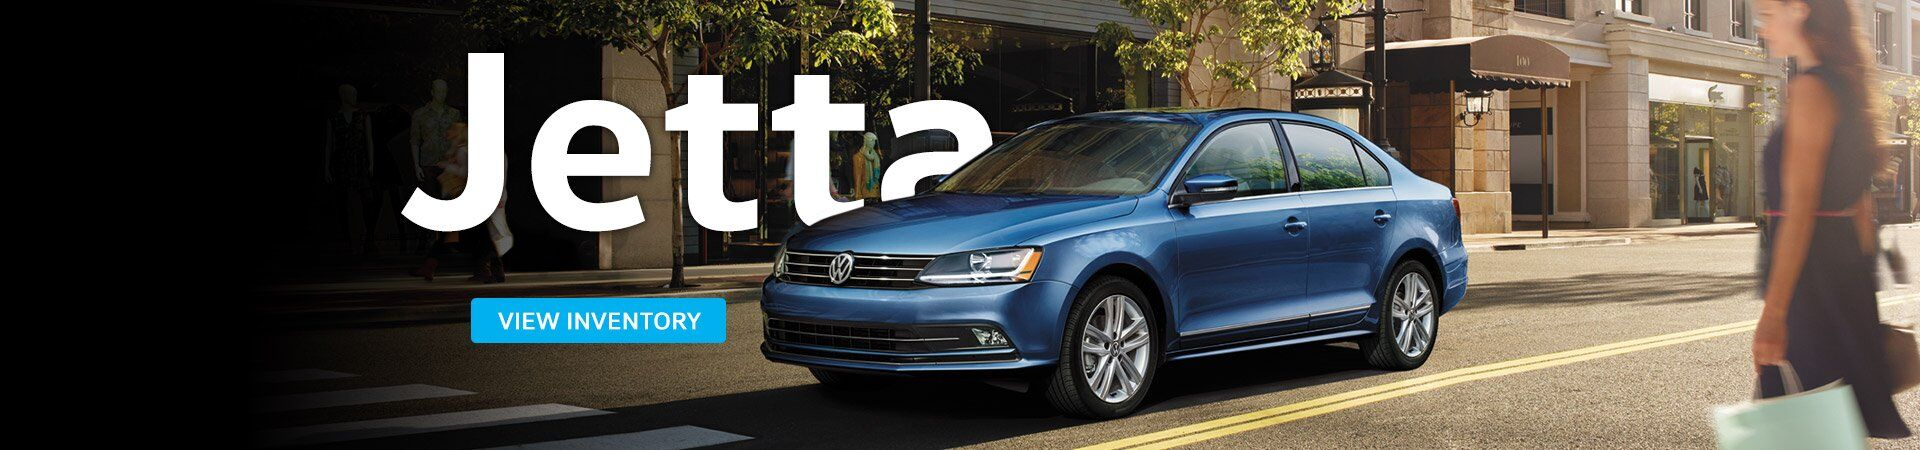 New VW Jetta near St. George